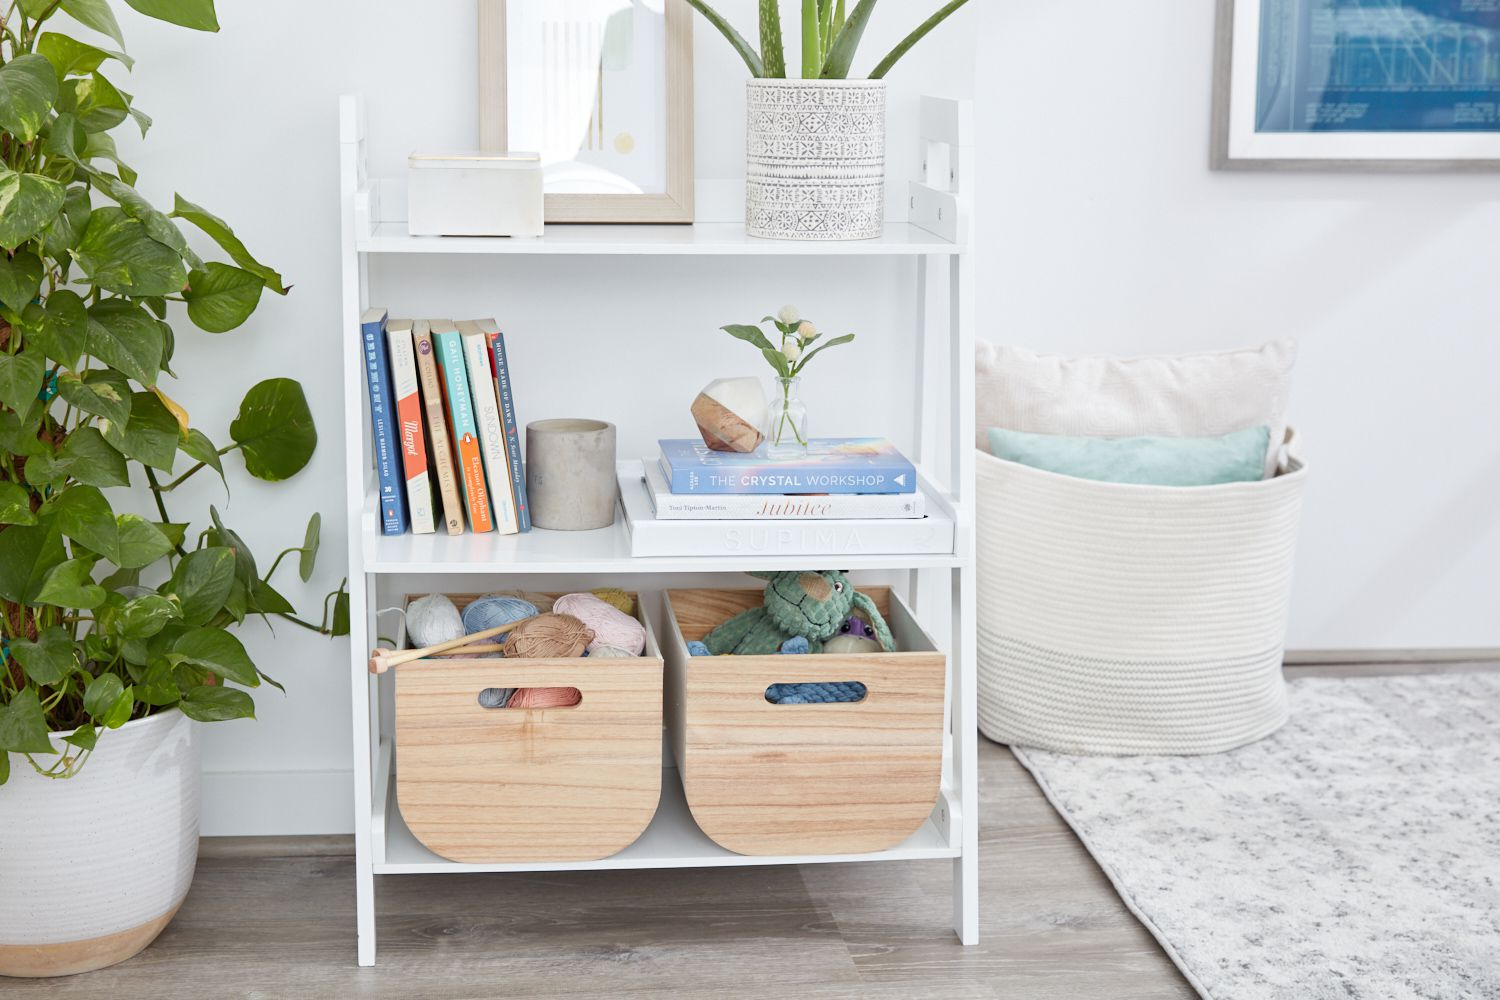 39 Room Organization Ideas For Your Home